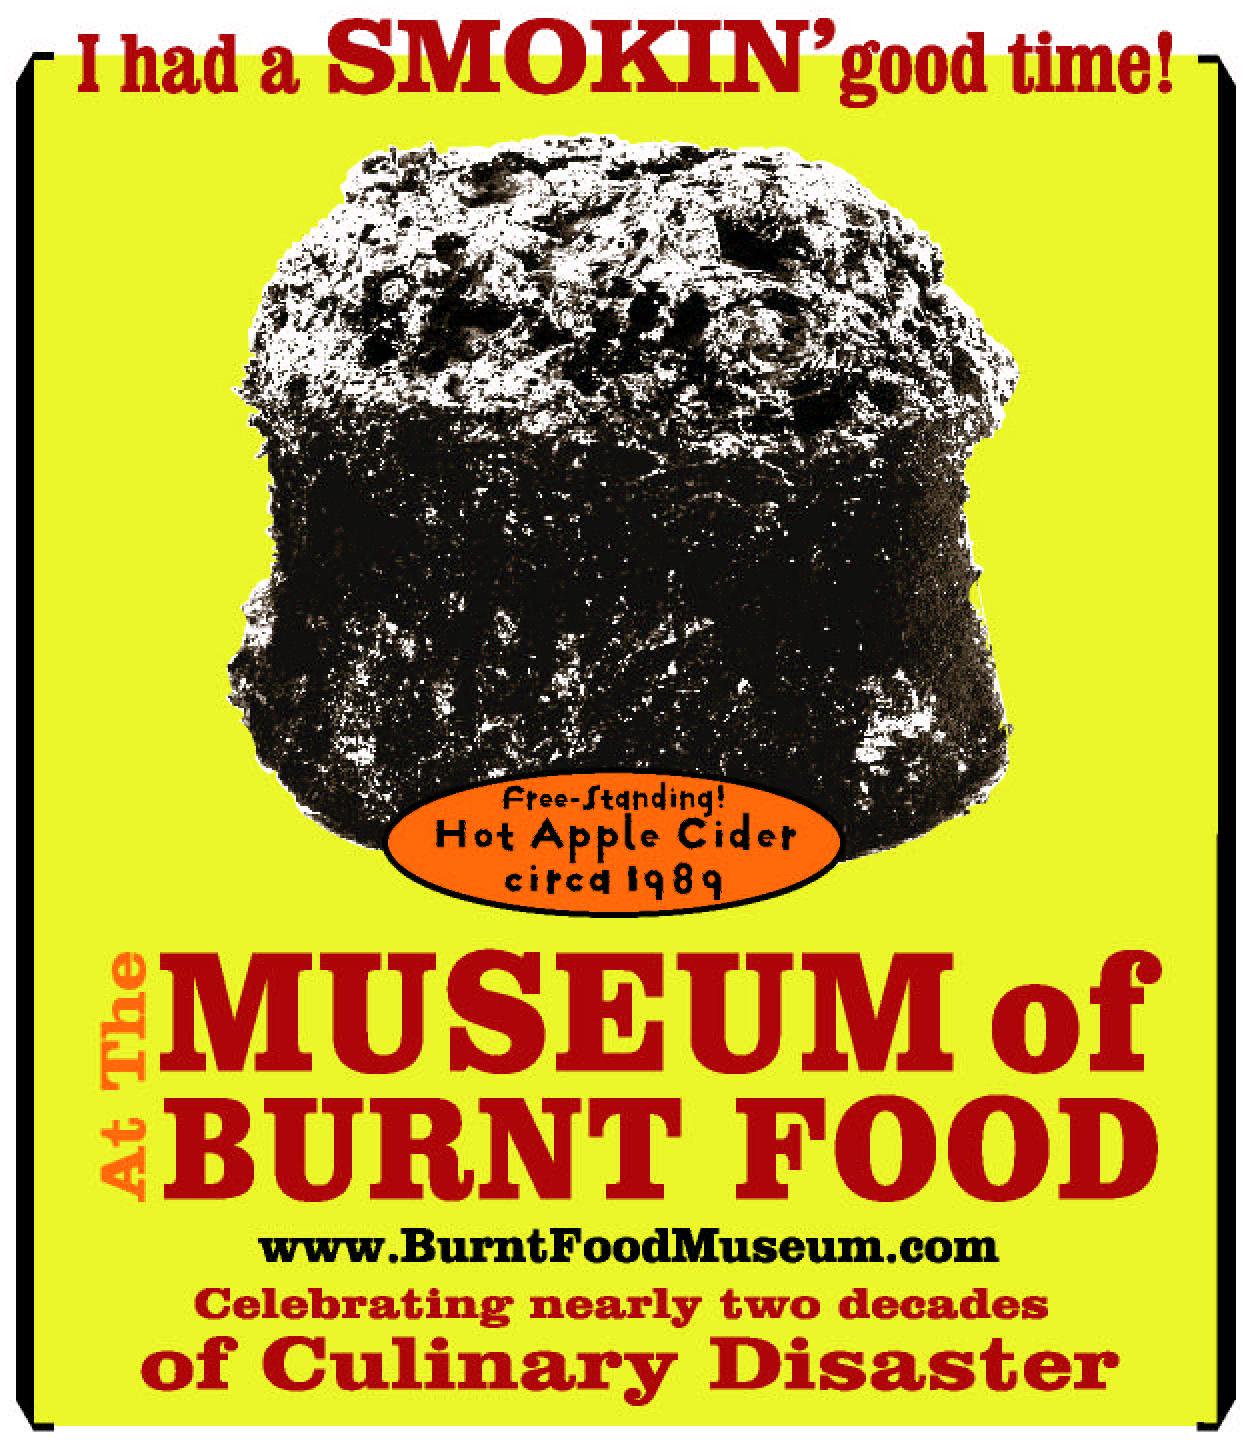 Food Museums: An Eclectic List